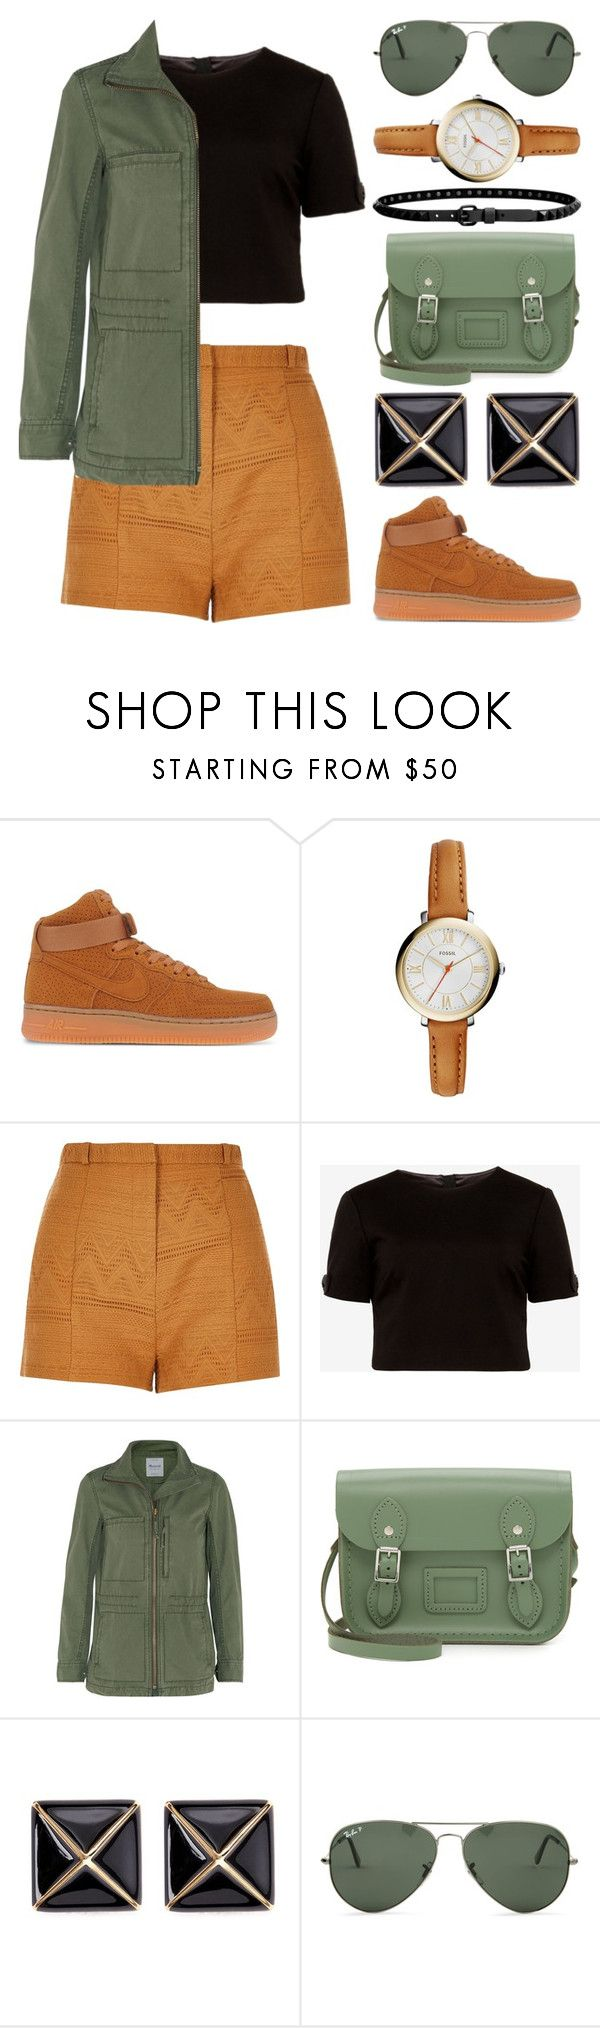 """Untitled 133"" by meaganmuffins ❤ liked on Polyvore featuring NIKE, FOSSIL, River Island, Ted Baker, Madewell, The Cambridge Satchel Company, Kenneth Jay Lane, Ray-Ban, Linea Pelle and croptop"